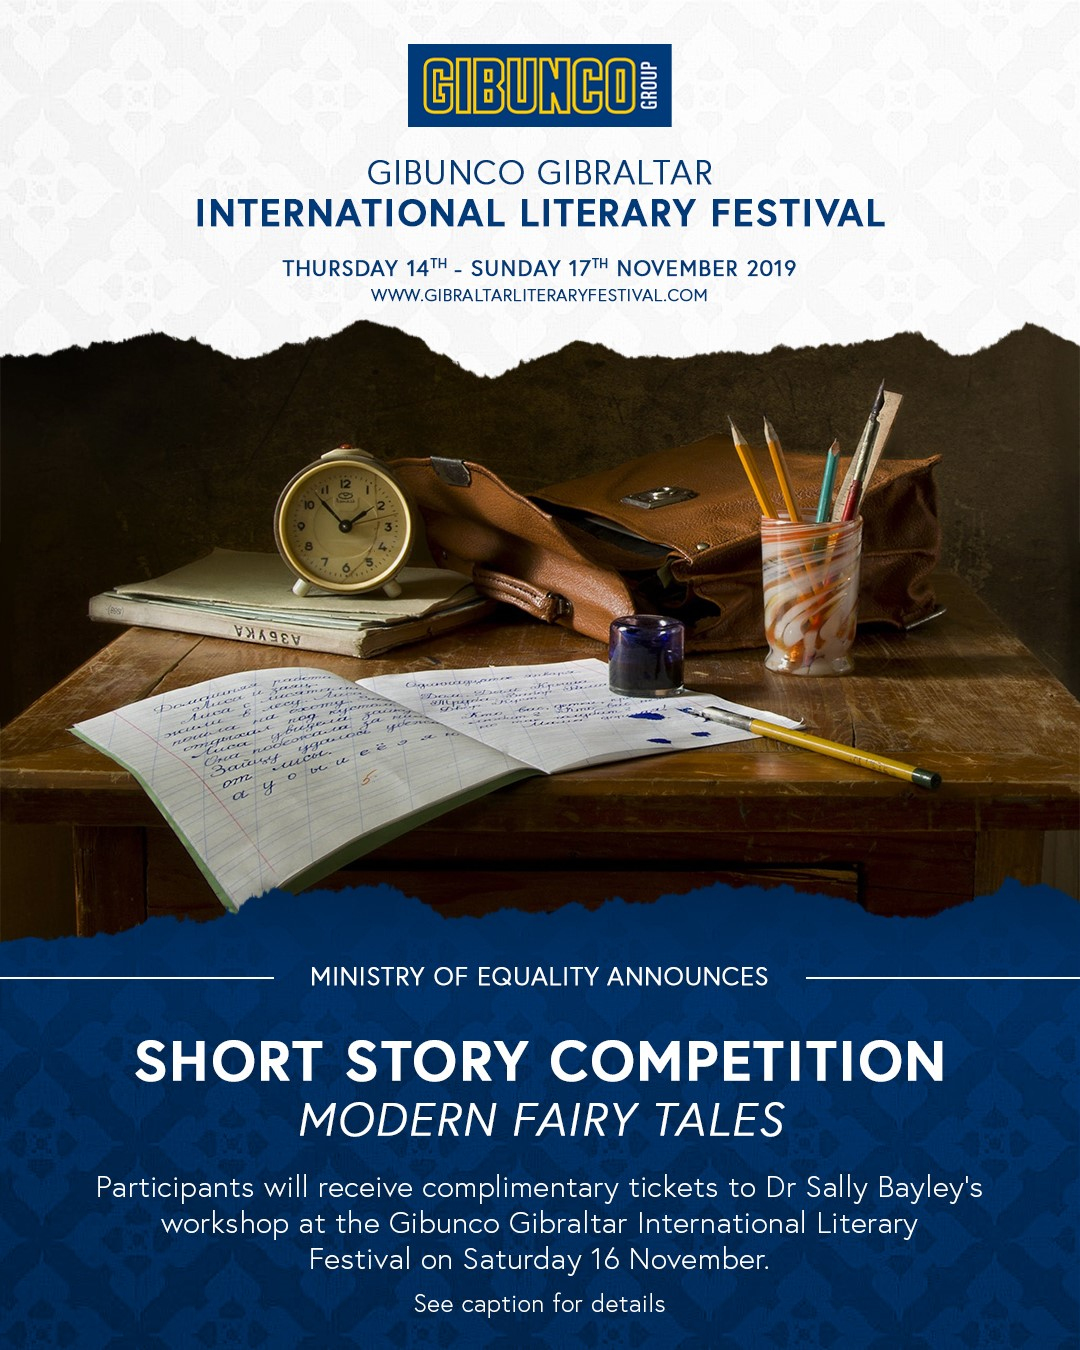 Ministry of Equality Launches Short Story Competition - Modern Fairy Tales  Image